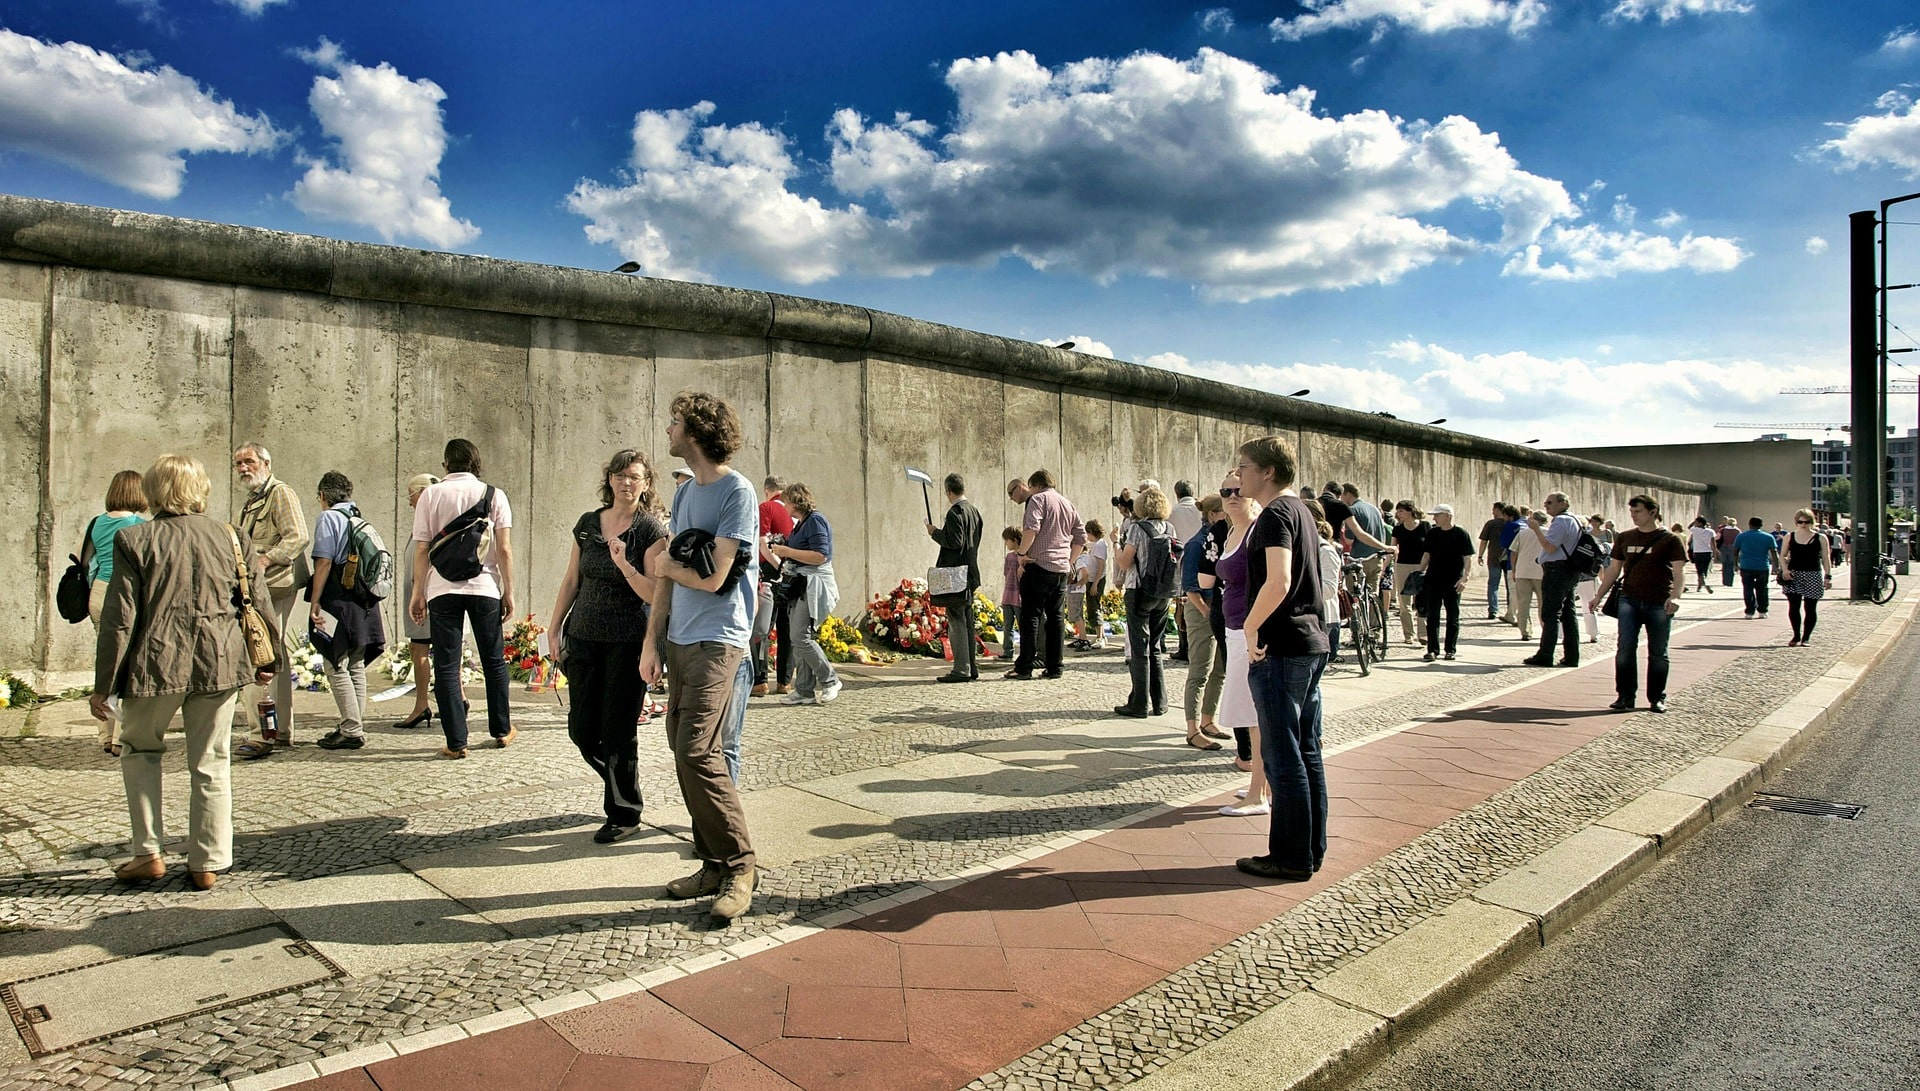 30 years since the fall of the Berlin Wall | communism | East Germany